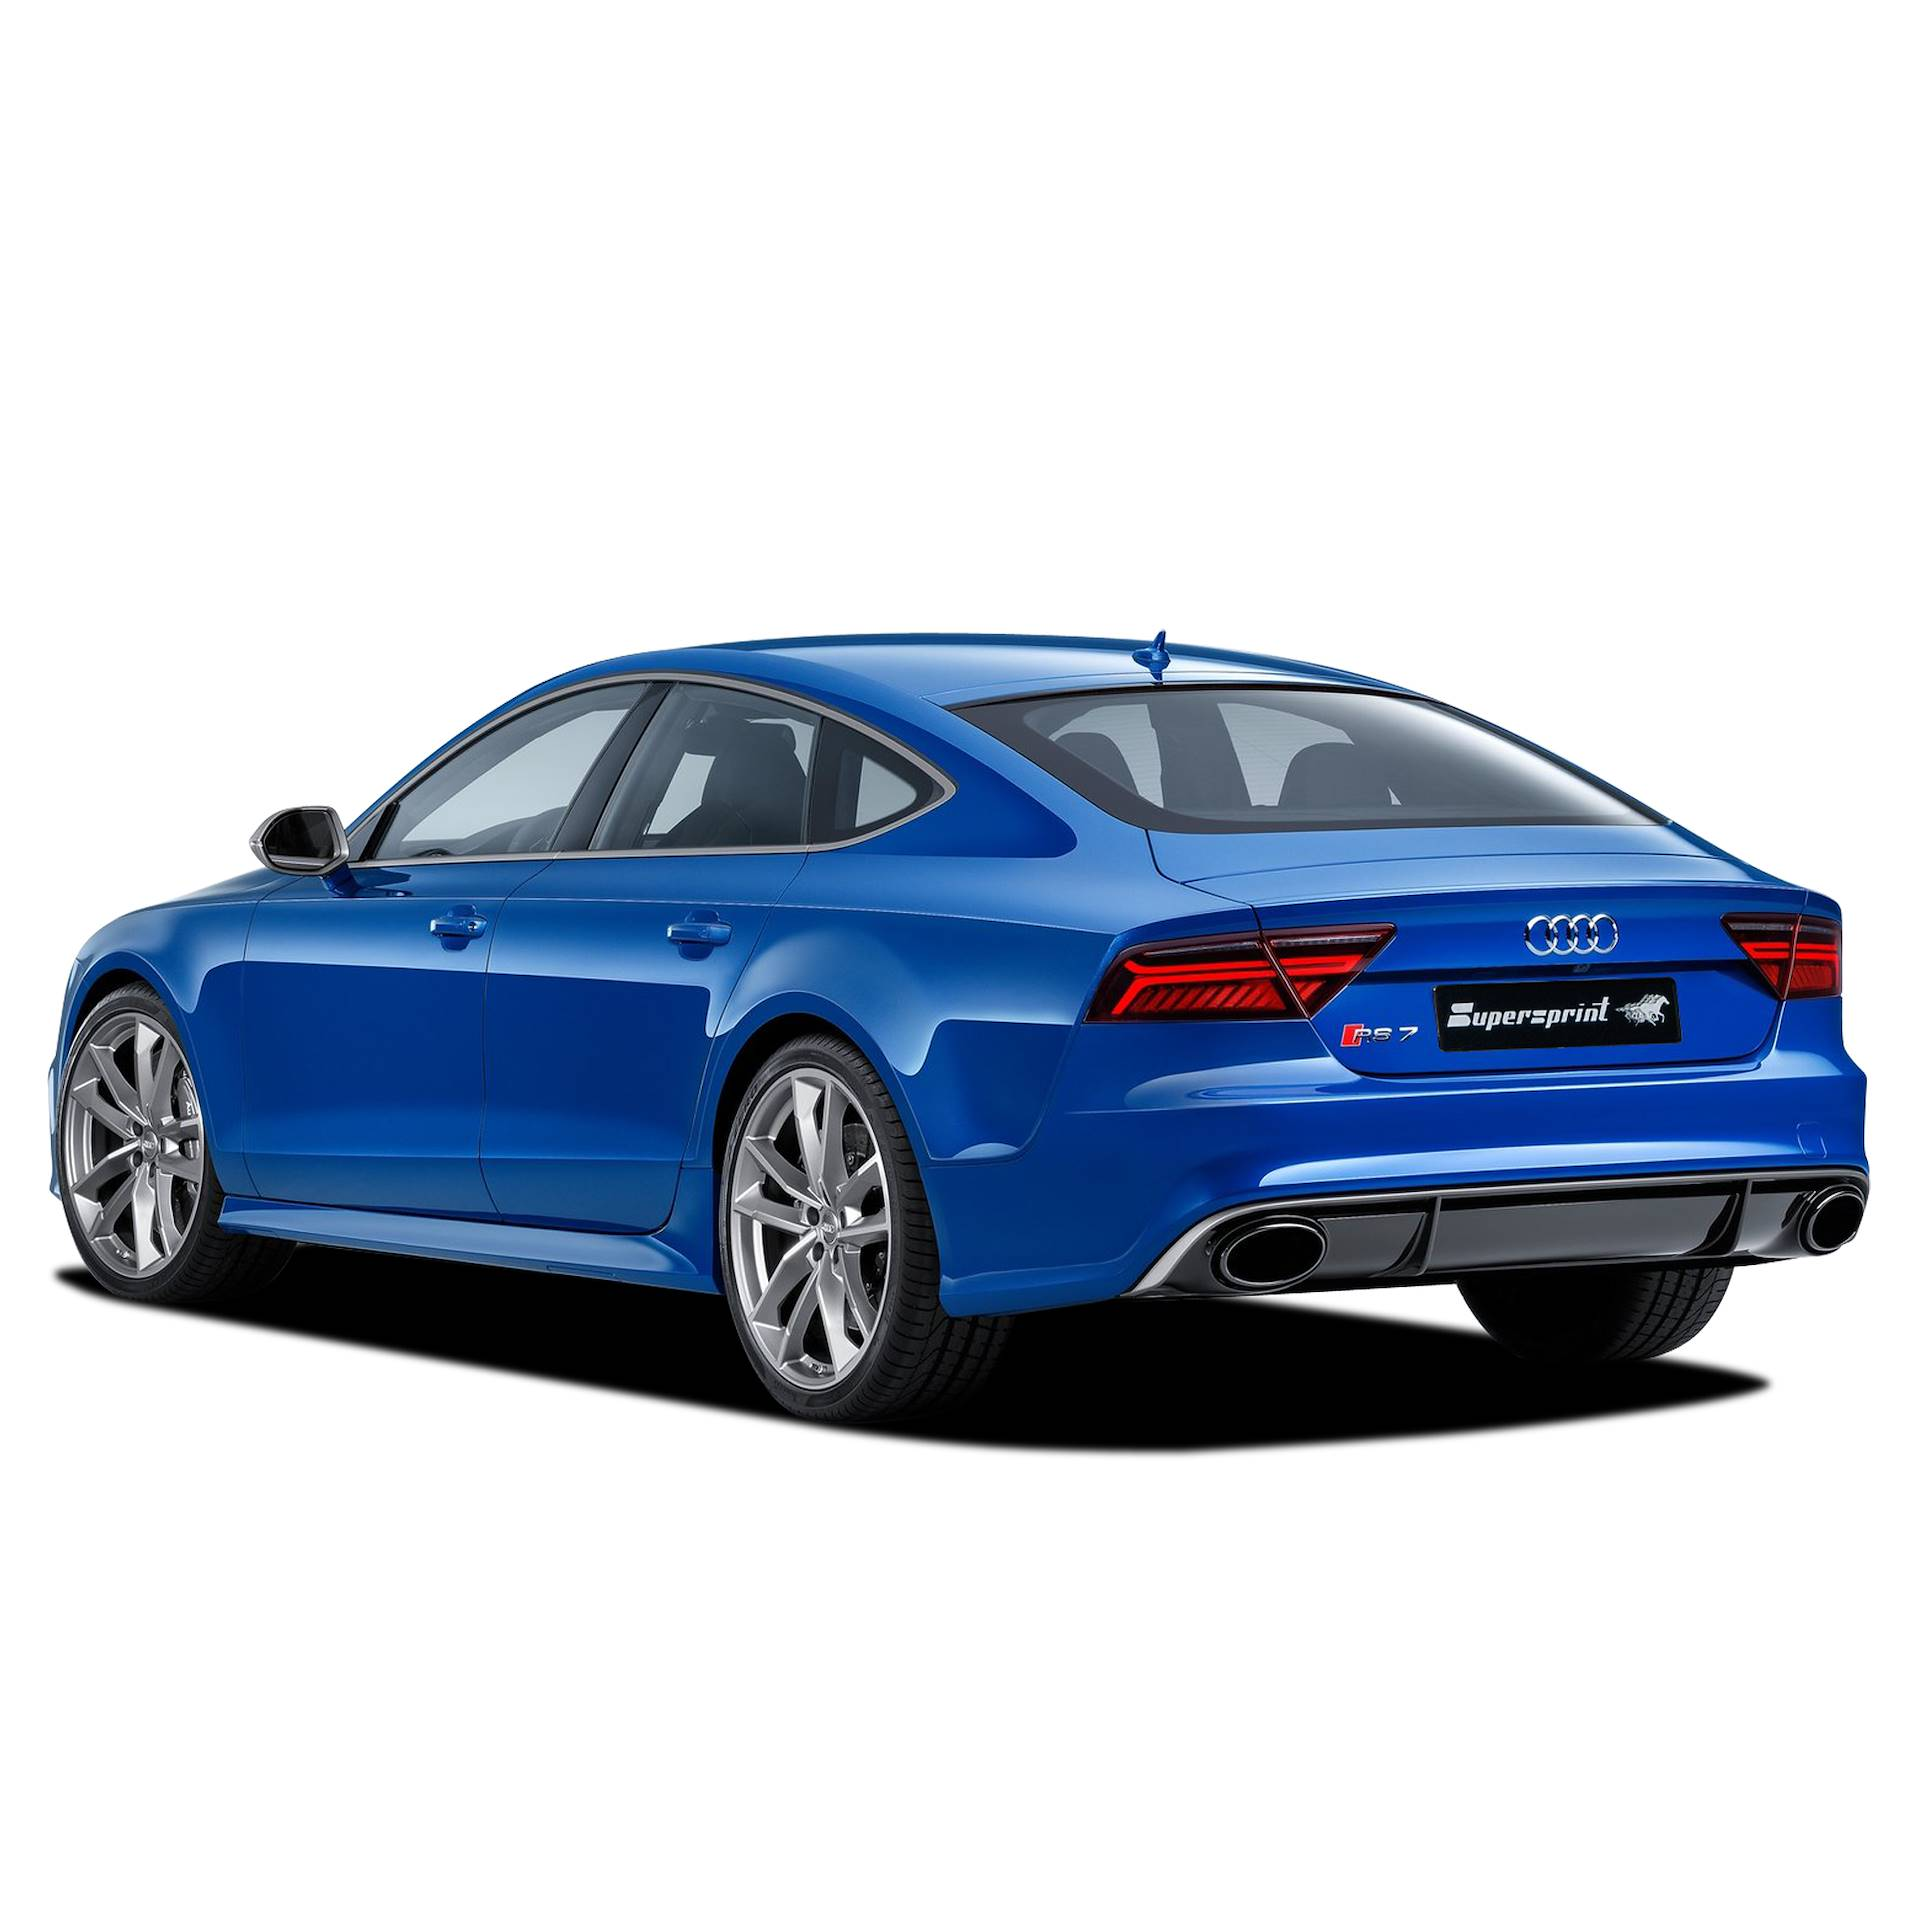 2015 Audi A7 Camshaft: Performance Sport Exhaust For Audi RS7 Performance With